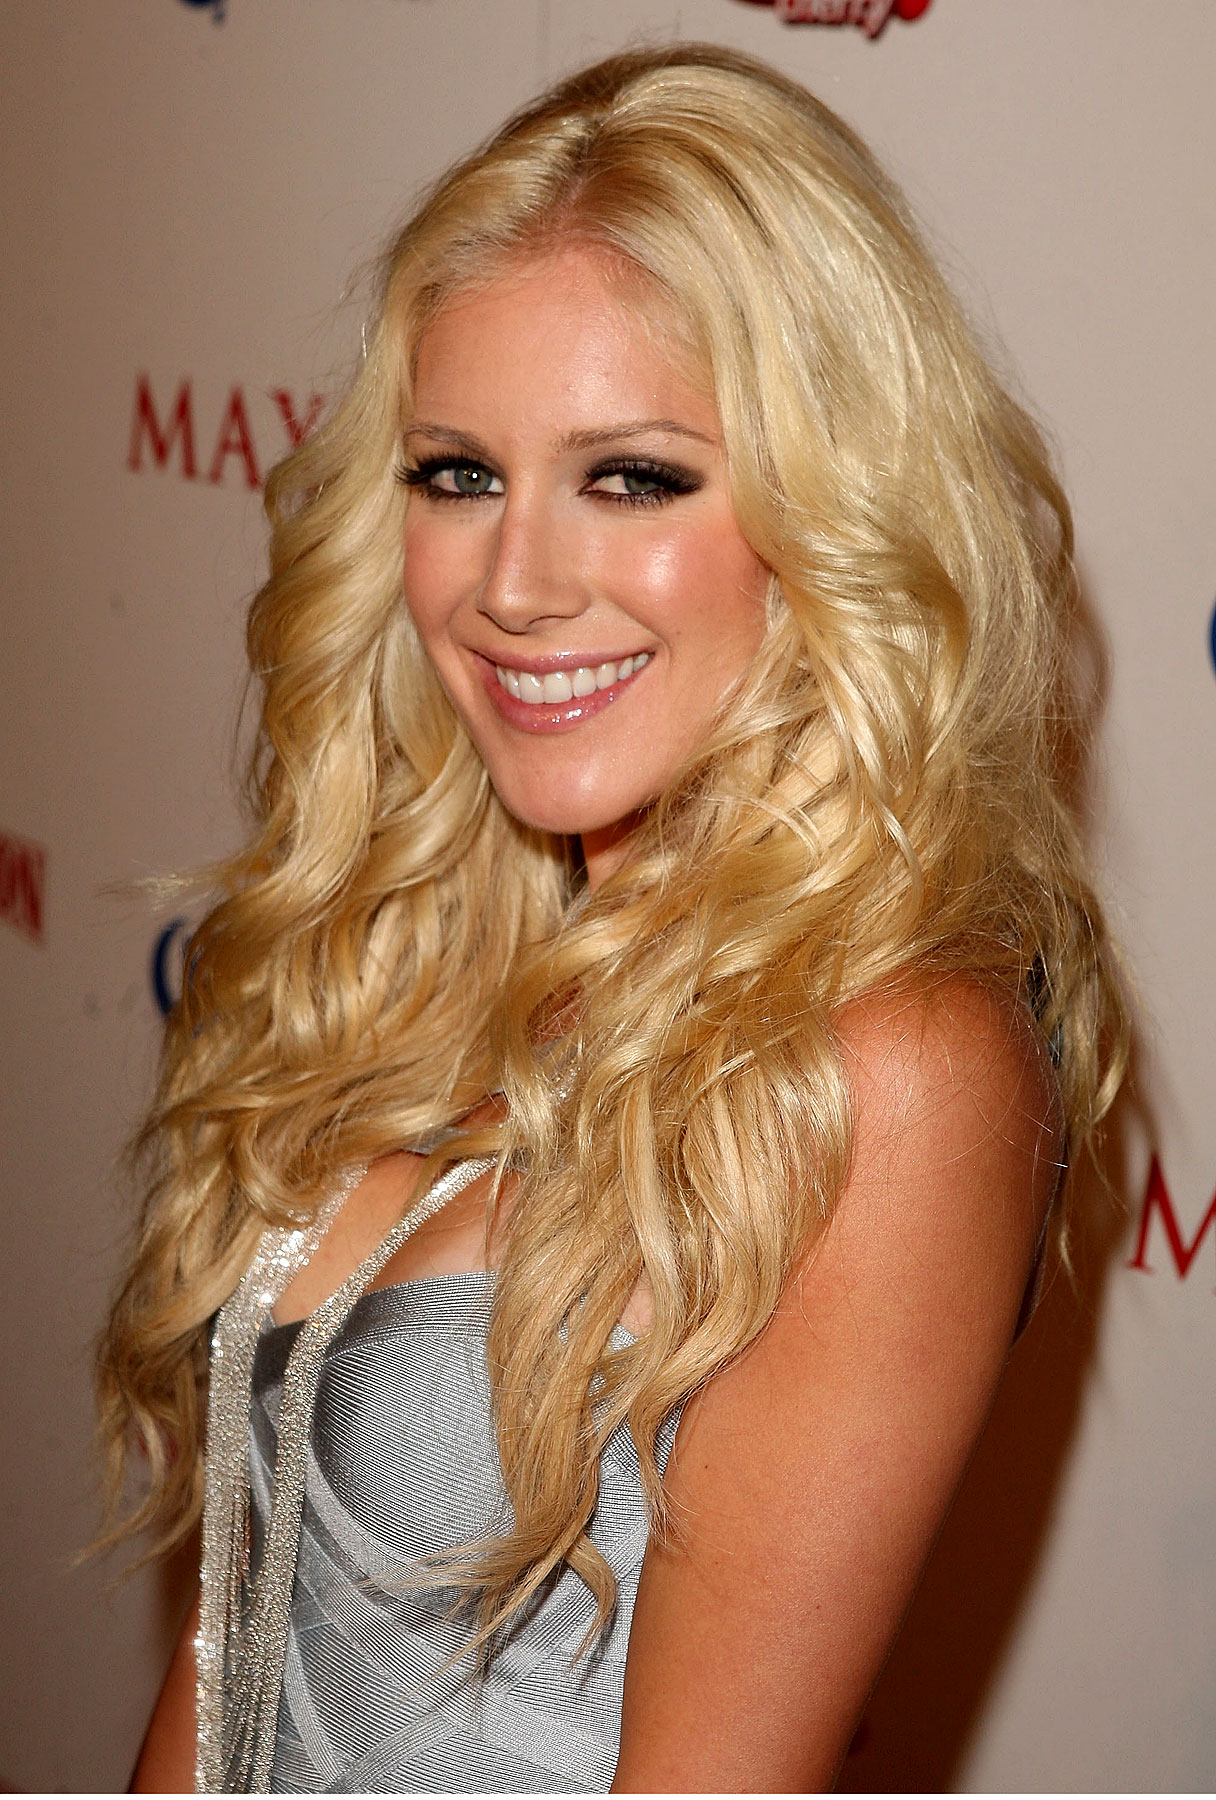 Heidi Montag's Gonna Work it All Out